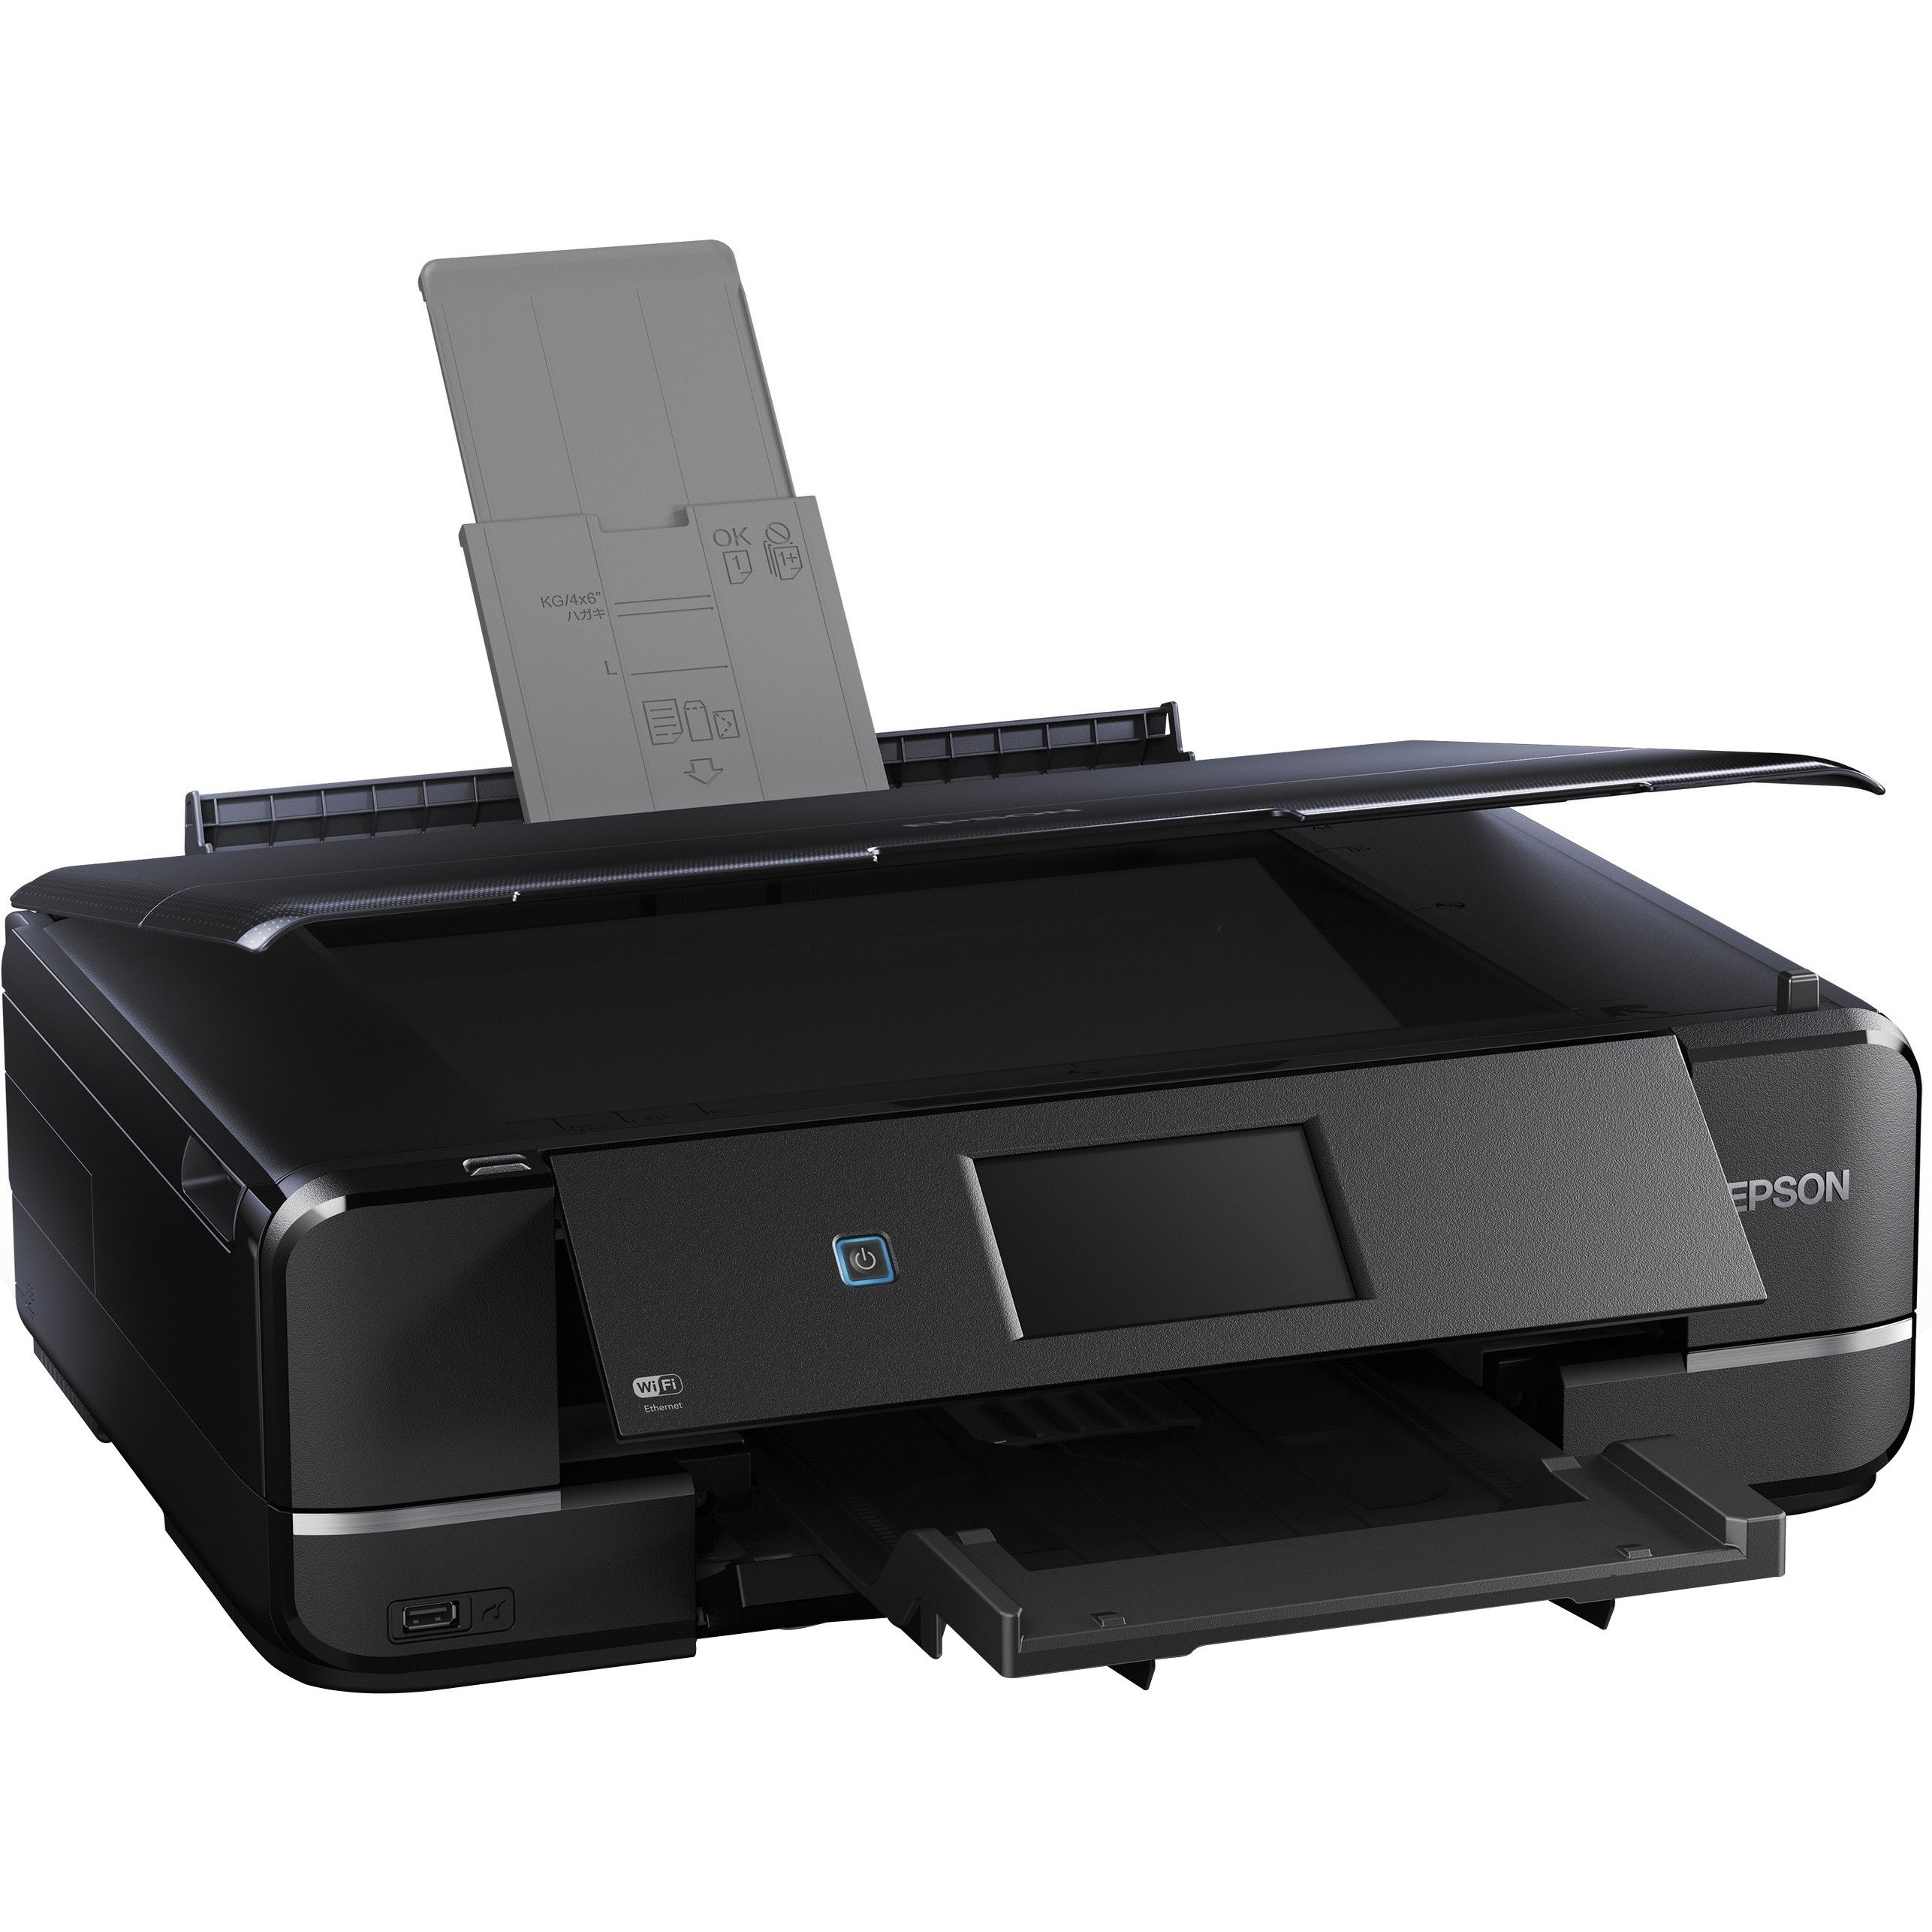 Epson Expression Photo XP-960 Inkjet Multifunction Printer